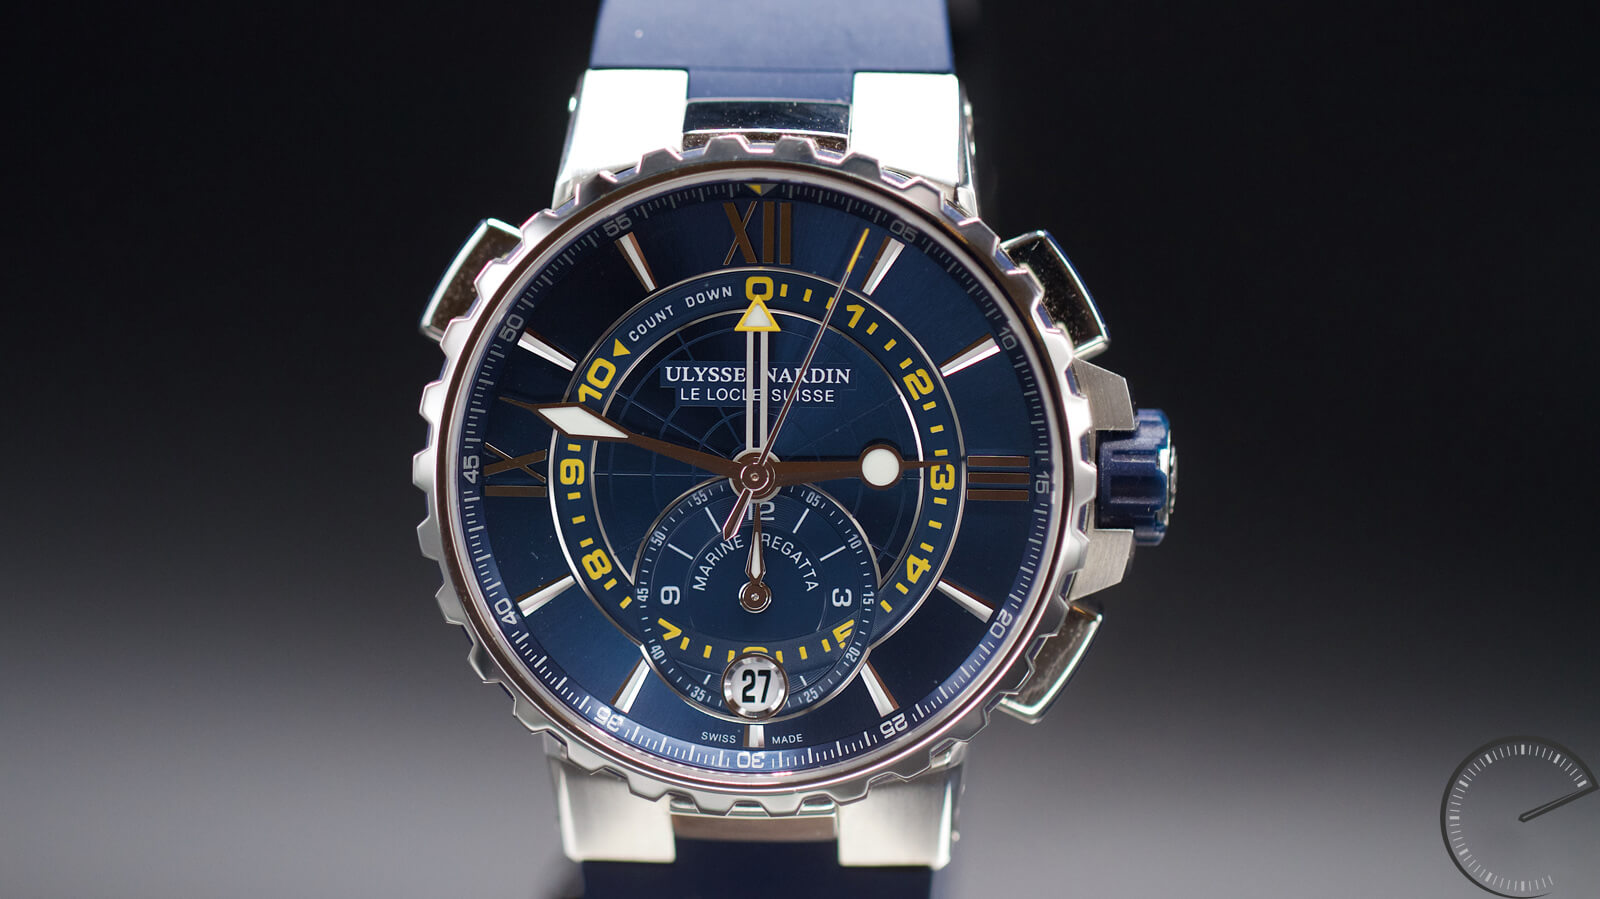 Ulysse Nardin Marine Regatta - chronograph with countdown function